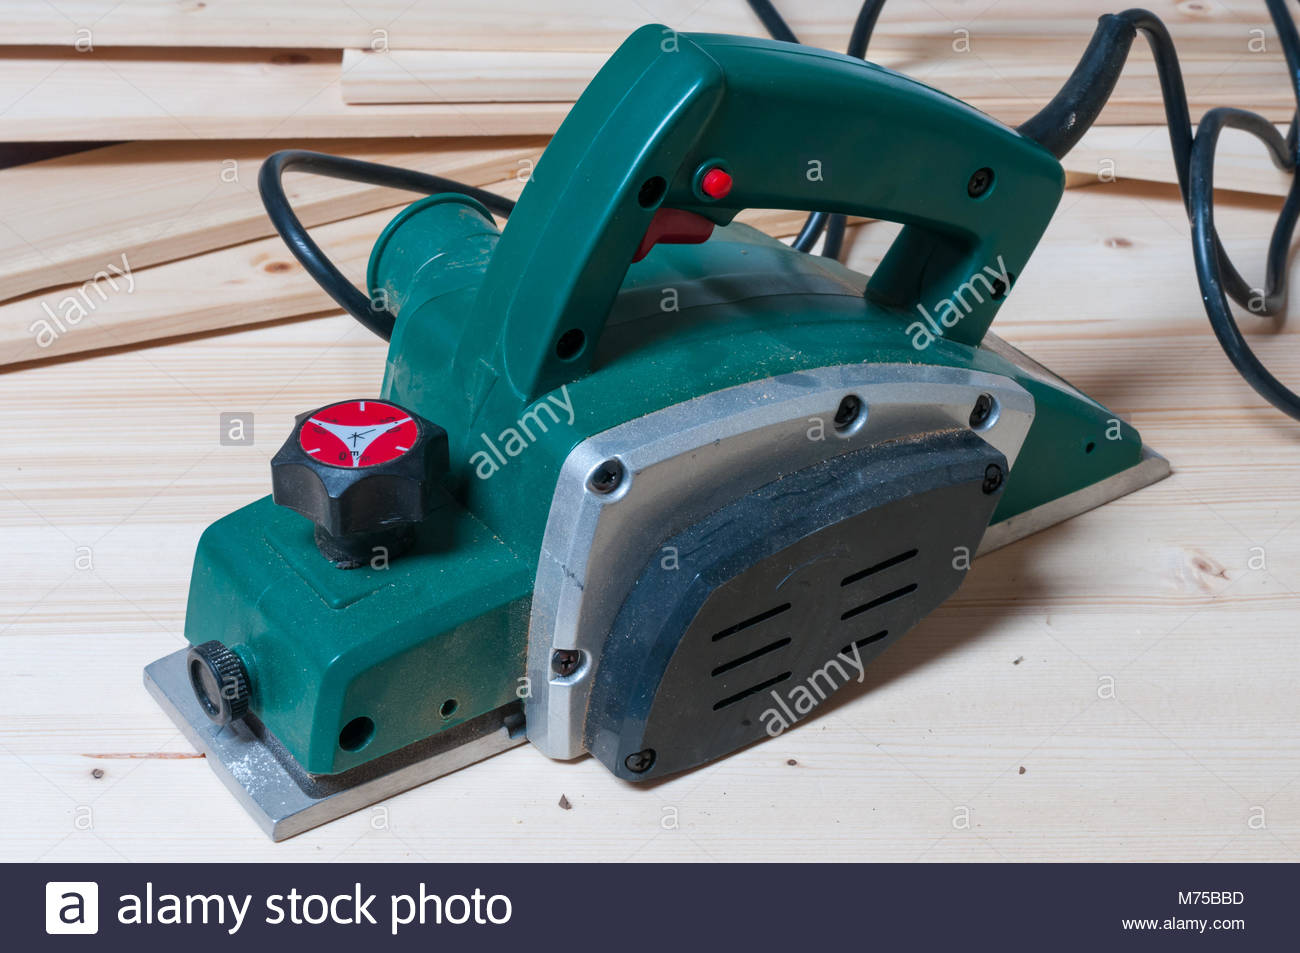 Electric Planer Stock Photos Images Alamy What Does An Do Tool On A Woodworking Workbench Horizontal Composition Image